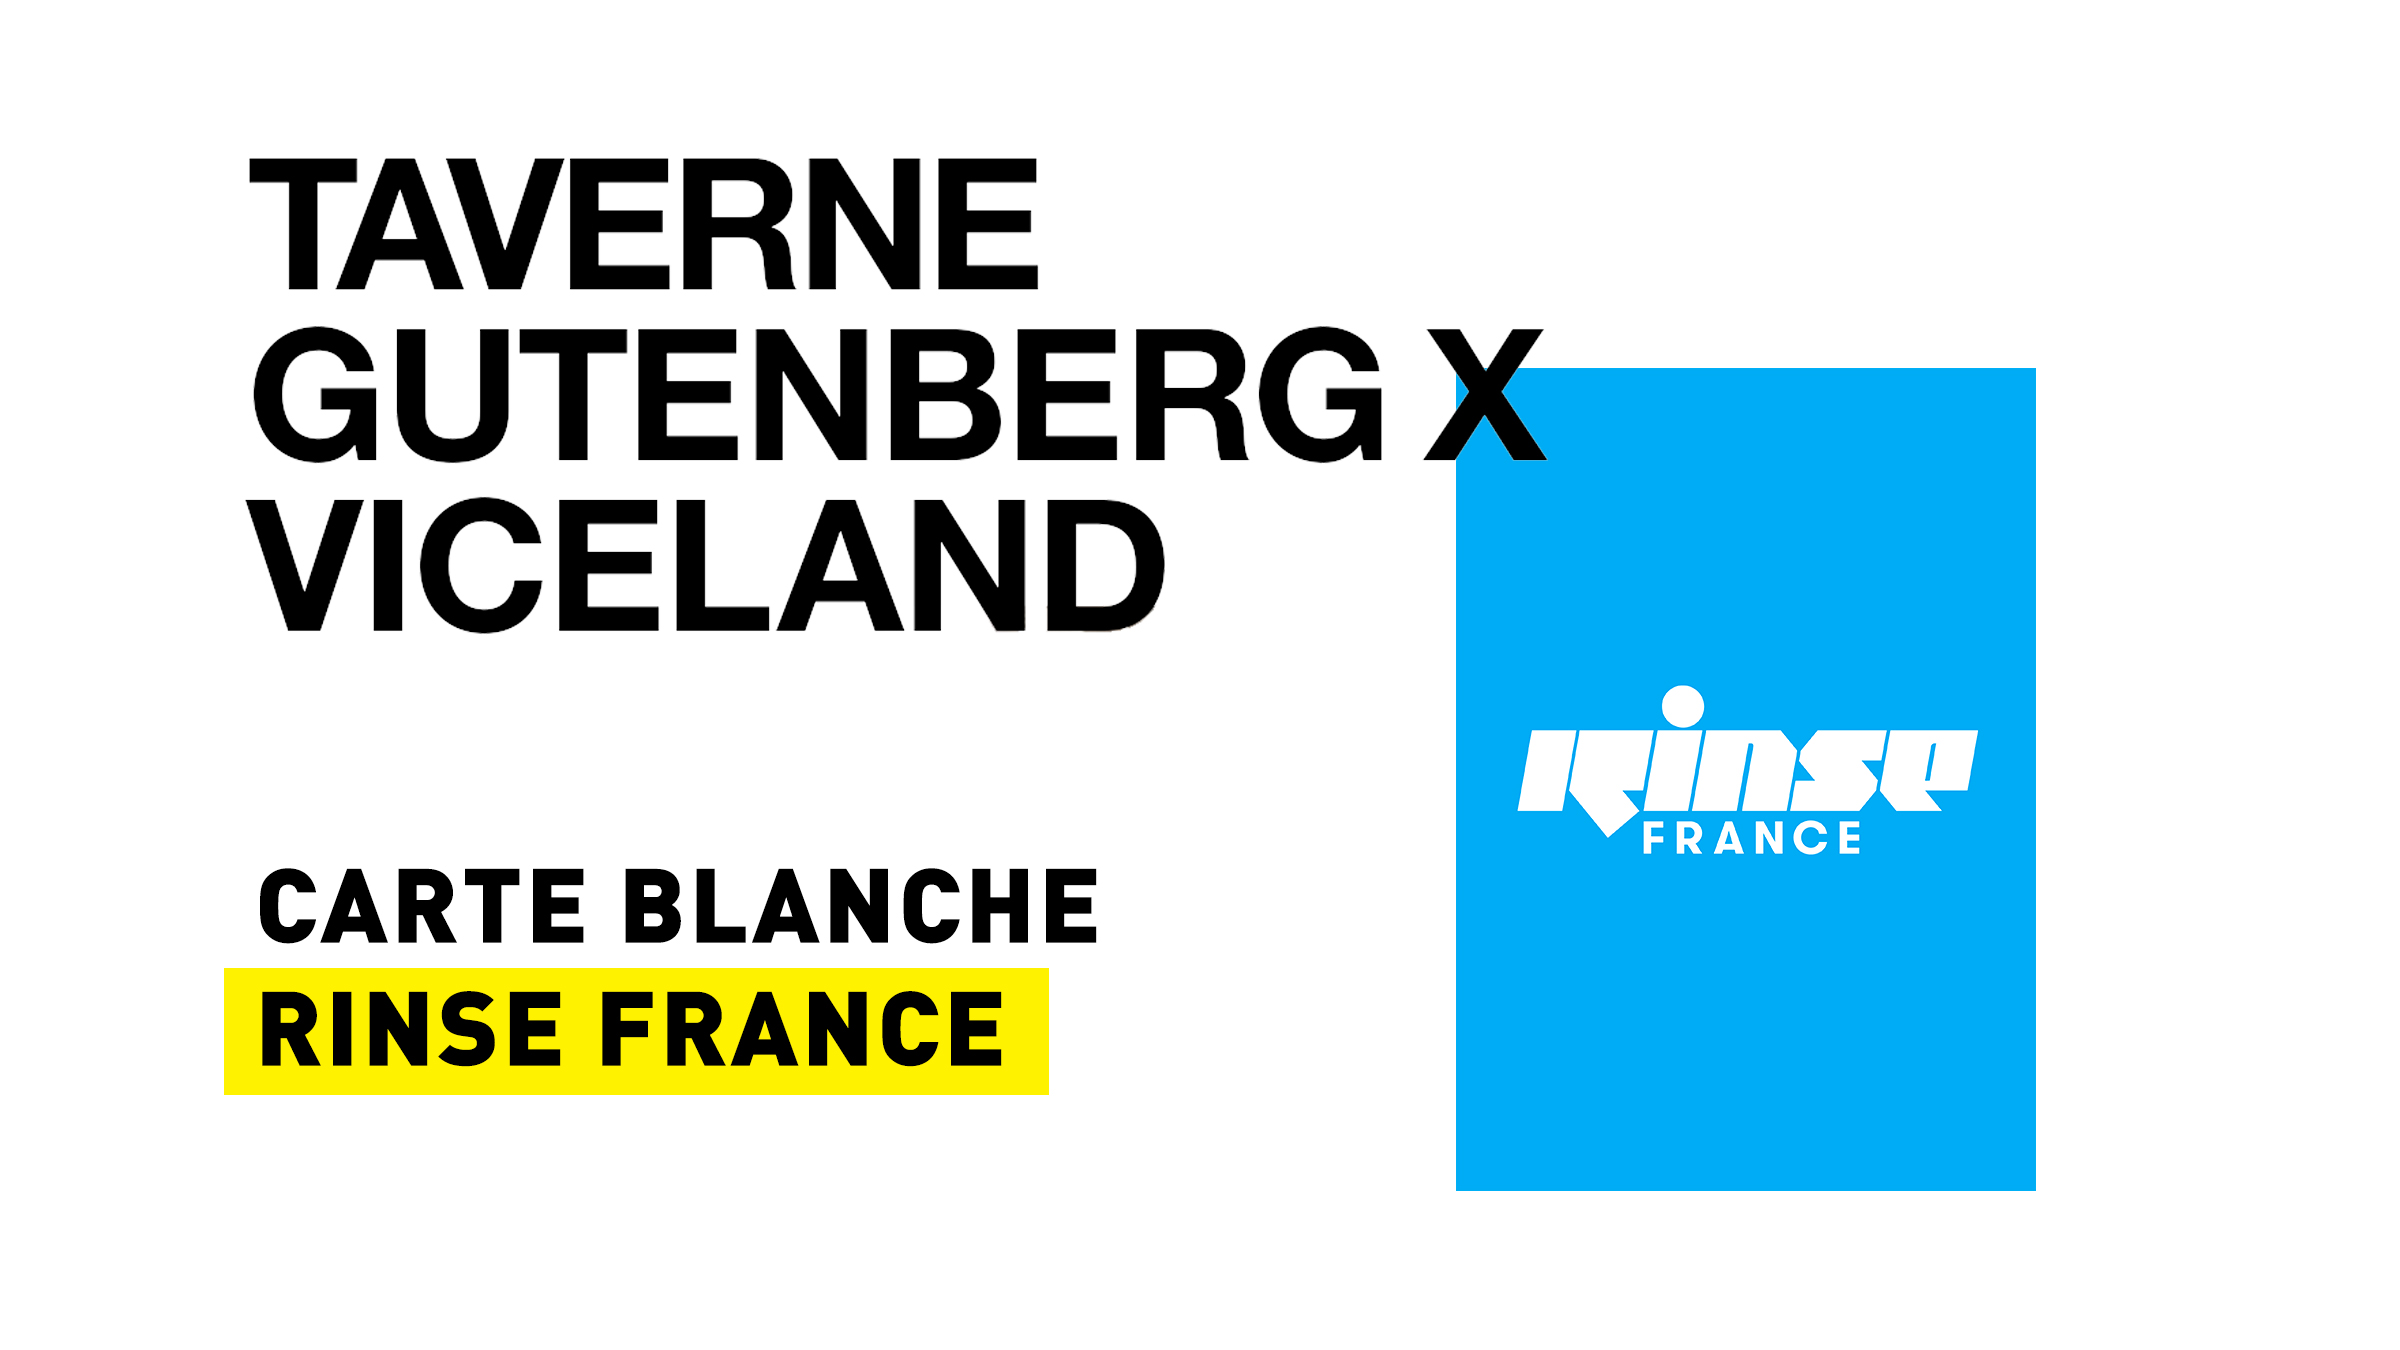 Carte blanche Rinse, Viceland, 12/05.